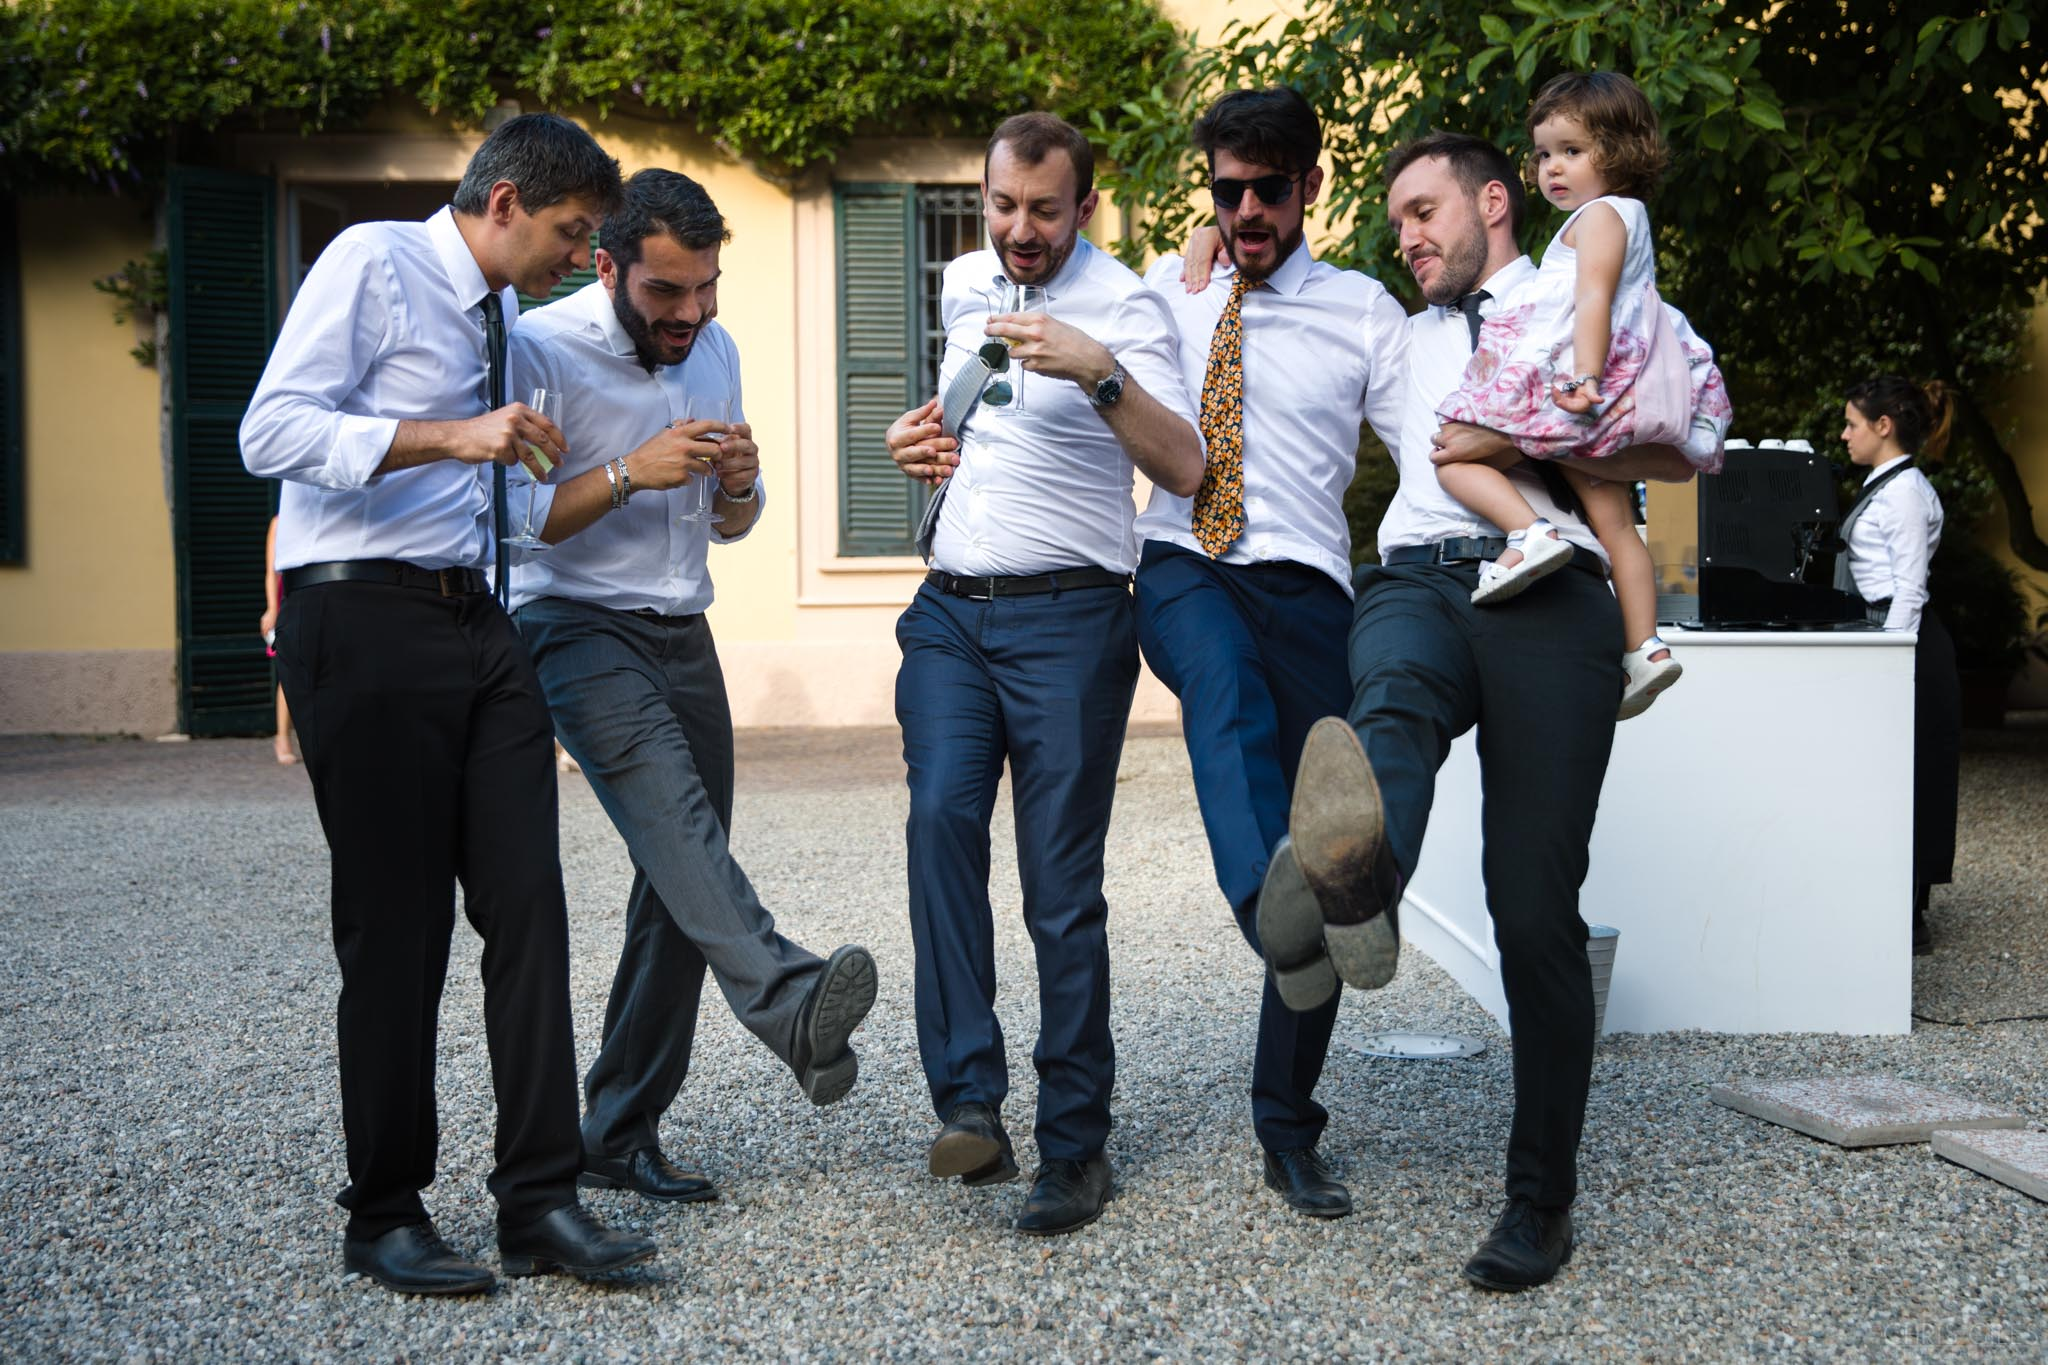 Drunk italian wedding guests